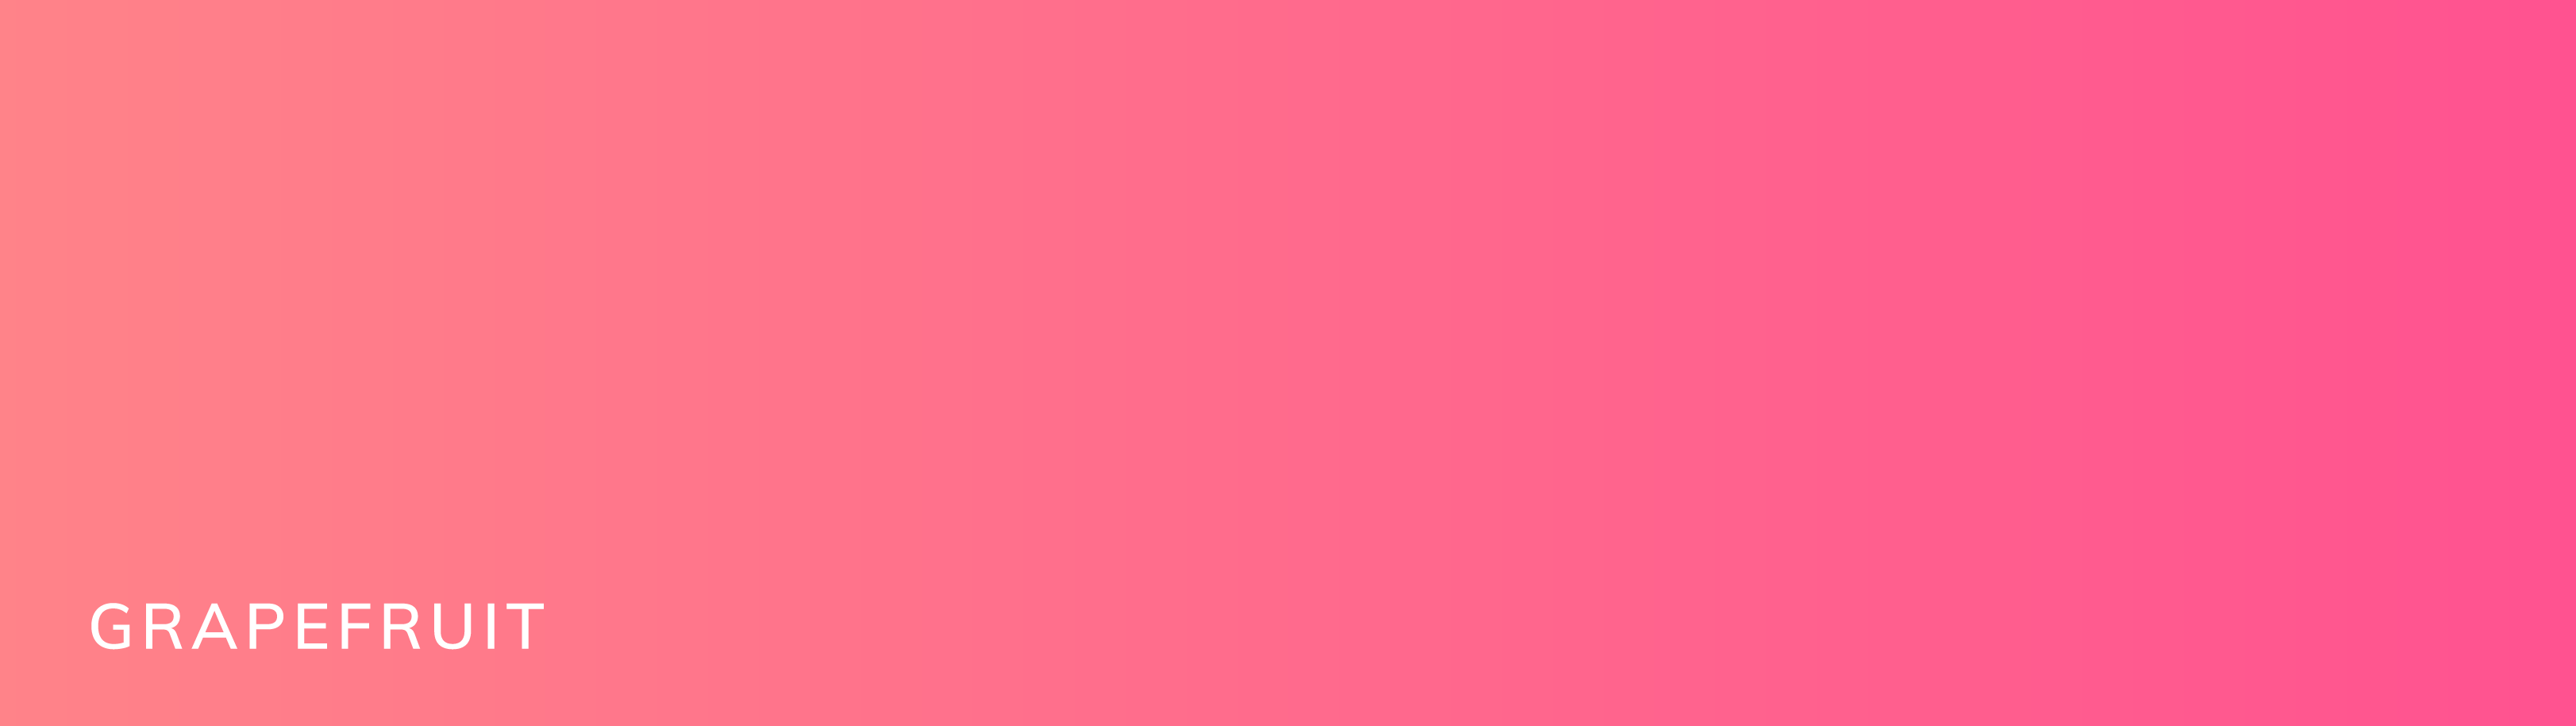 A gradient called grapefruit. This shows an orange-y pink color shifting toward a bright, deep magenta color.